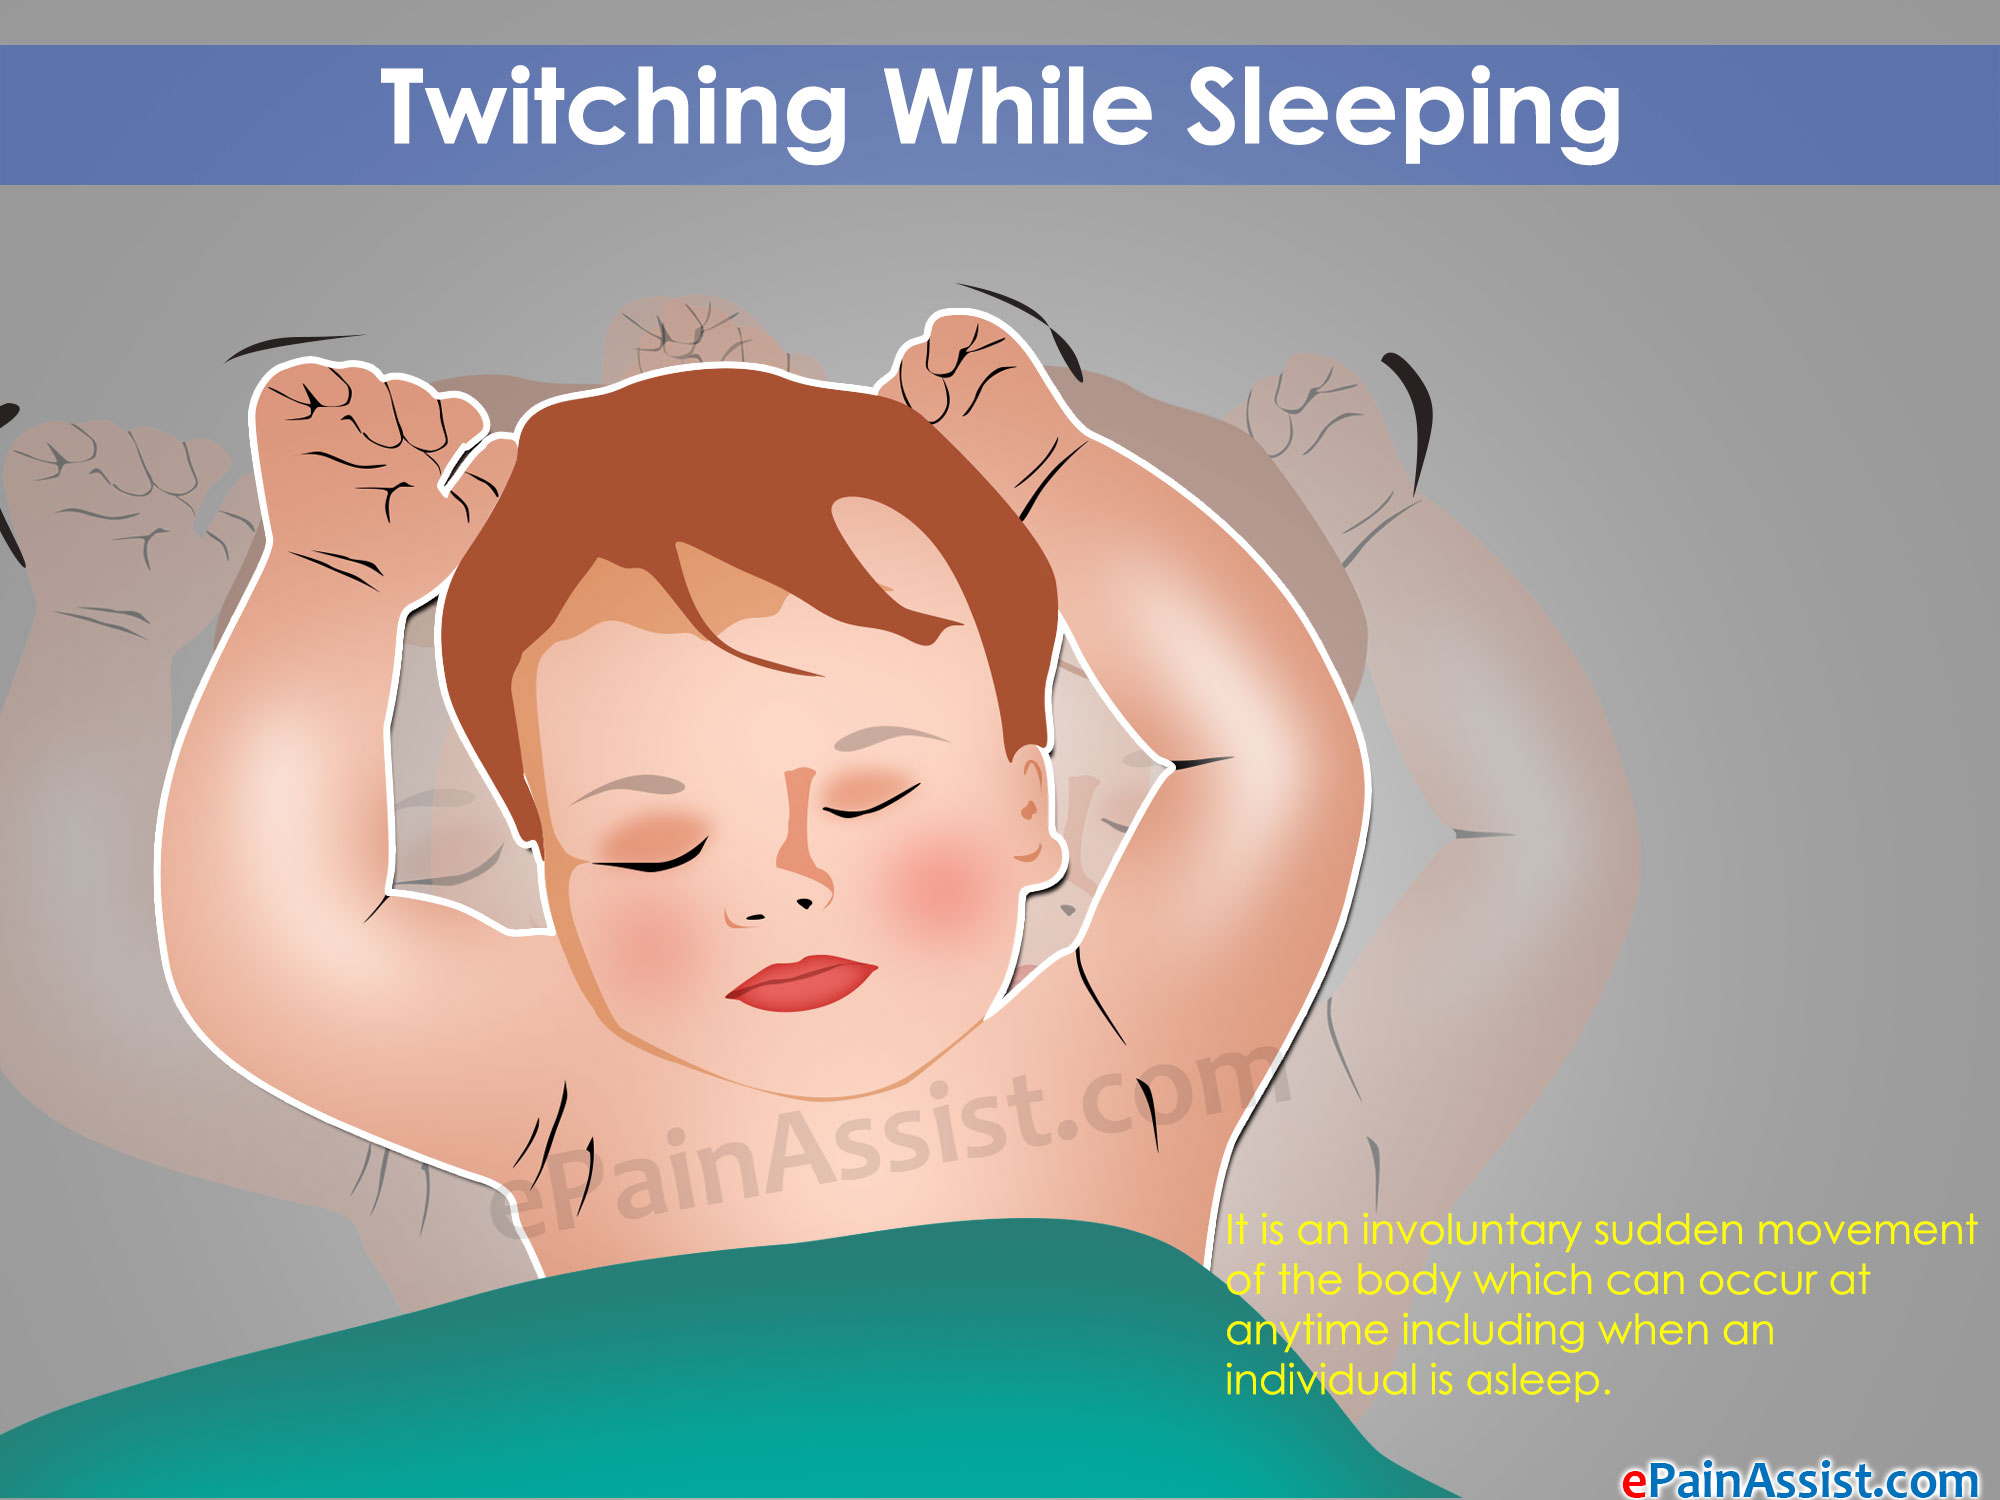 What Causes Twitching While Sleeping And How To Get Rid Of It?